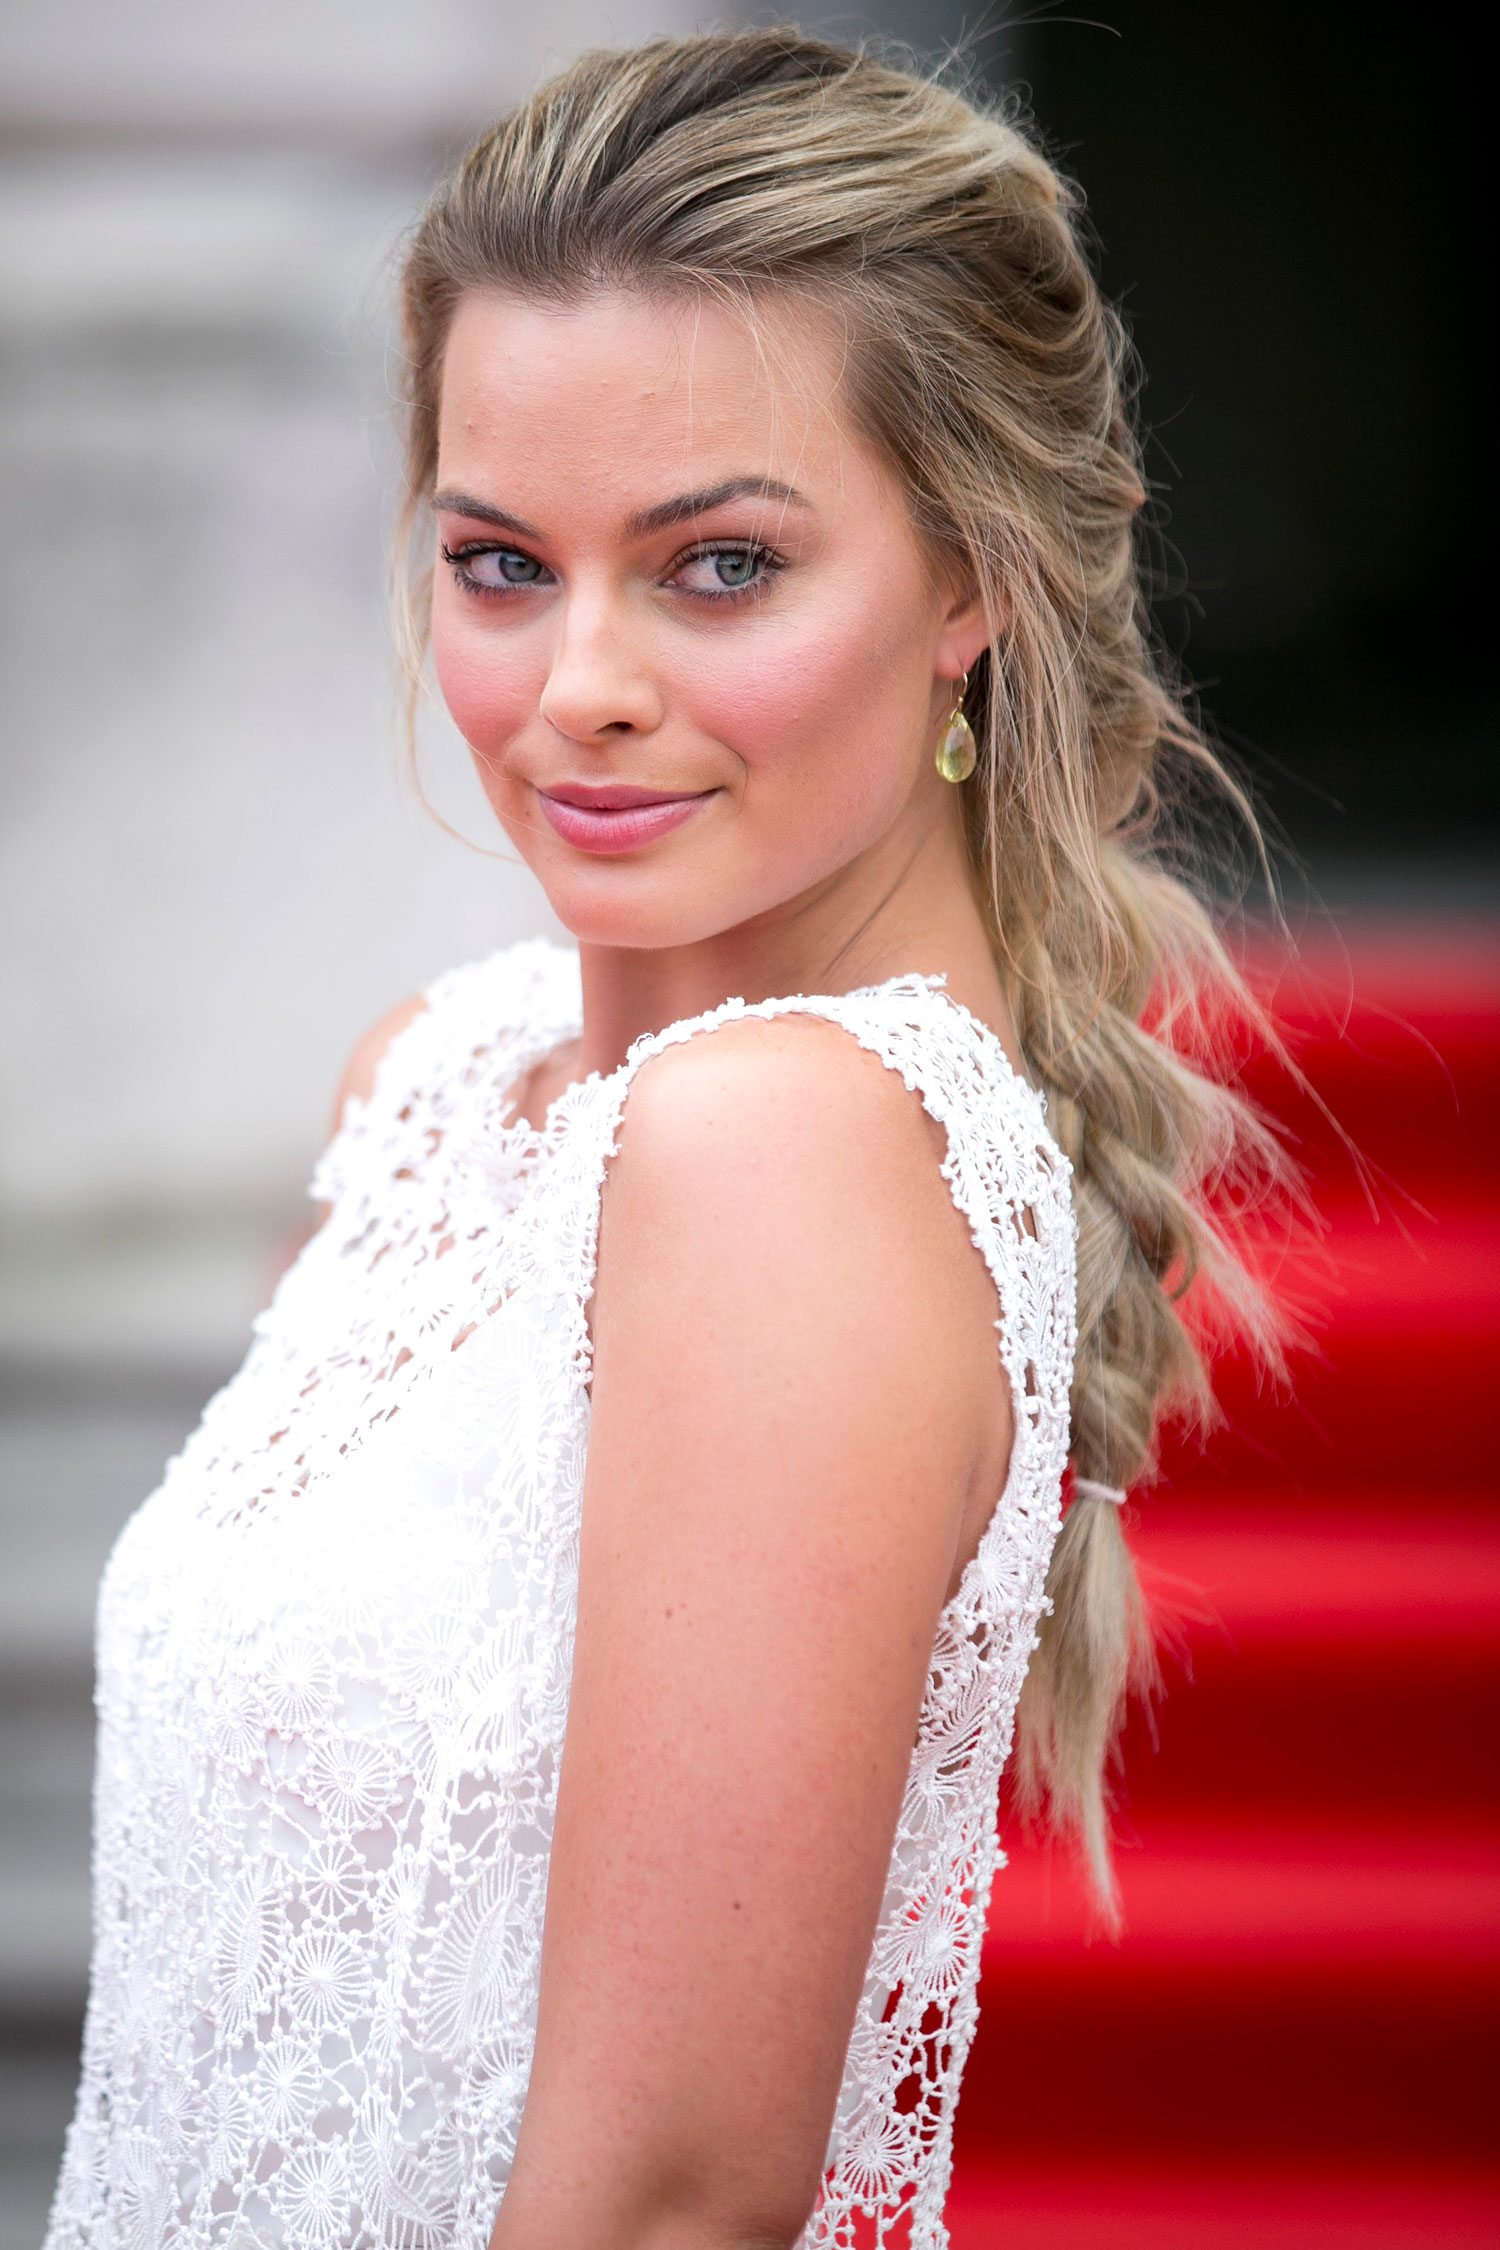 Astonishing 18 Best Braided Hairstyles Best Crown Side And French Braid Ideas Hairstyles For Women Draintrainus